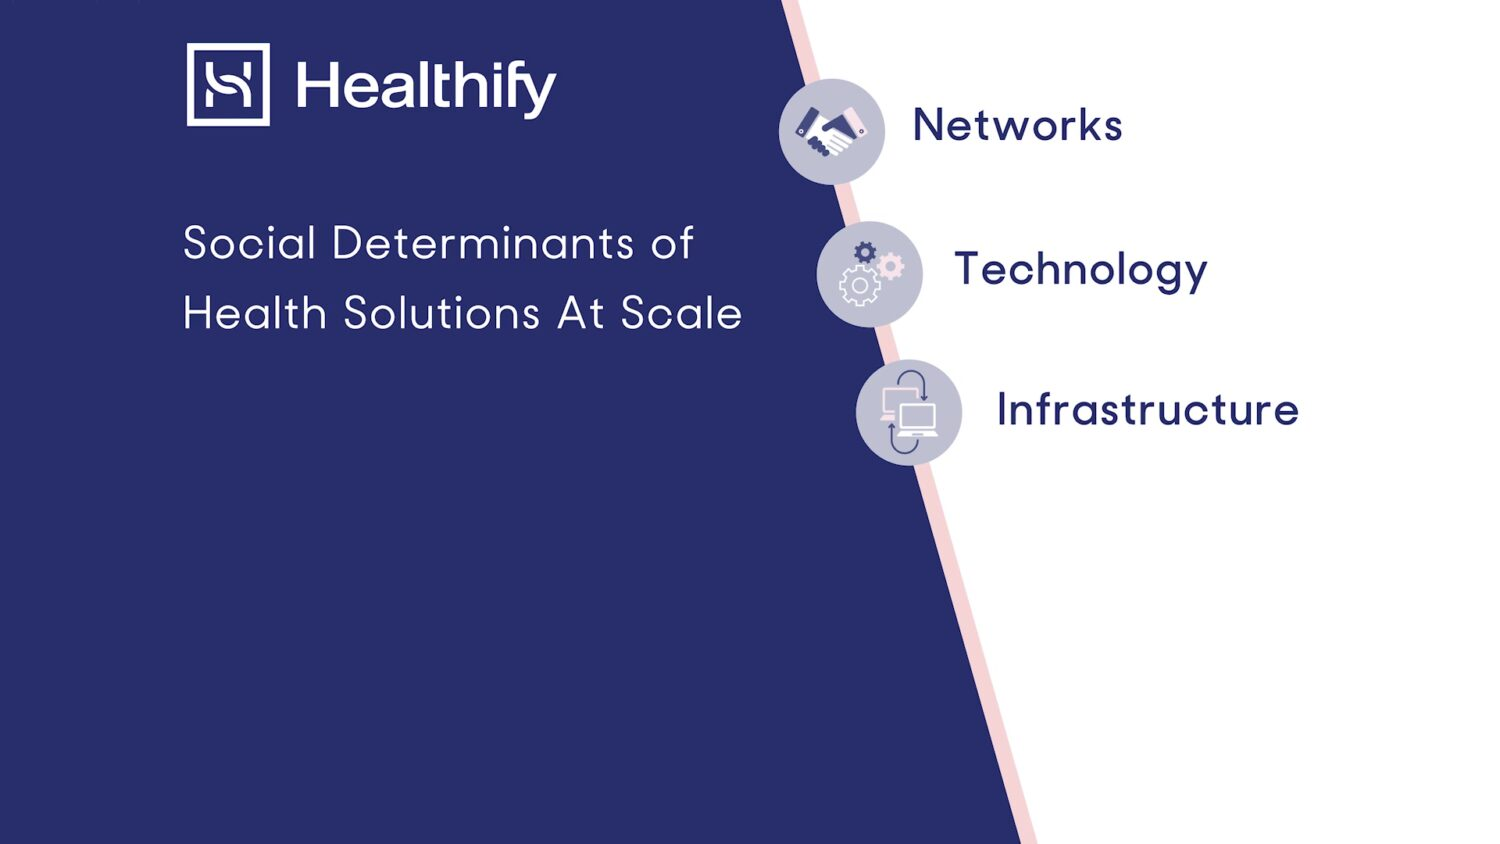 WellSky Acquires Healthify to Enhance Social Determinants of Health – M&A